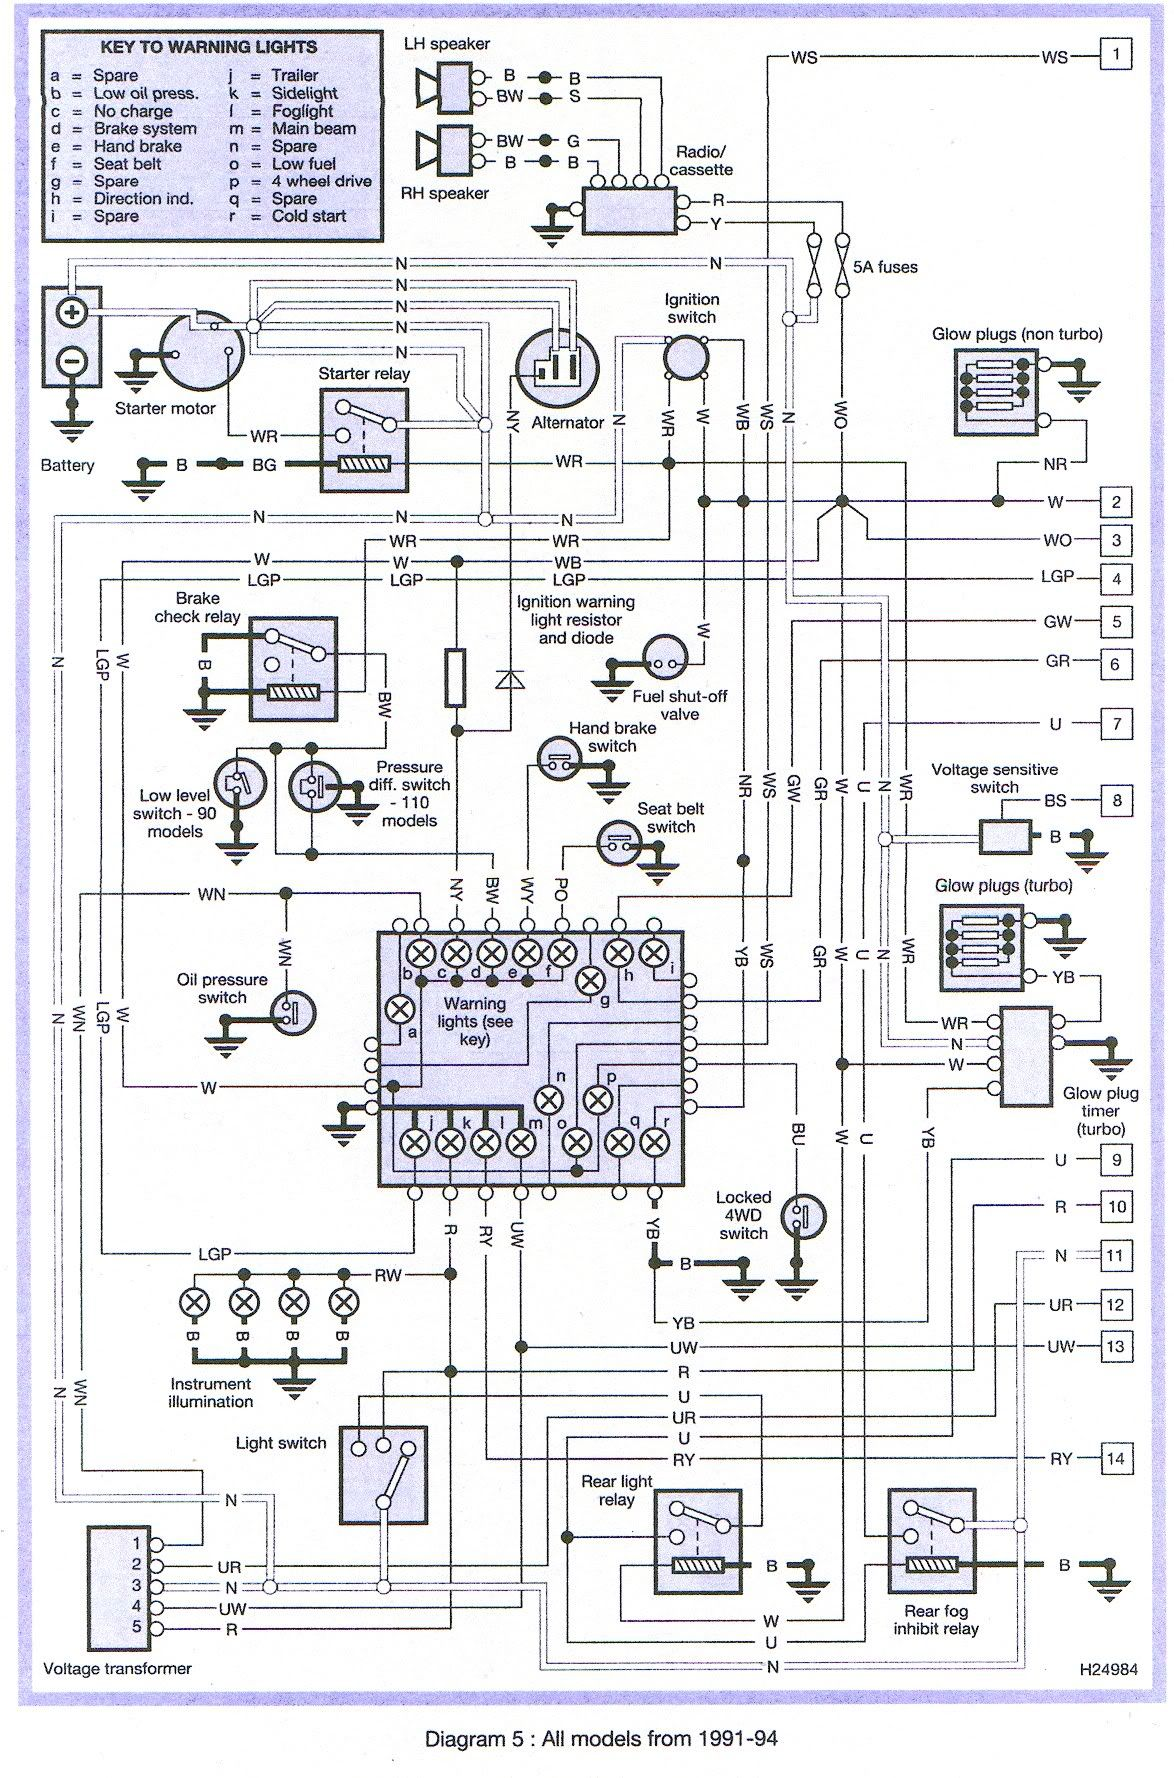 1995 Land Rover Discovery Fuse Diagram Content Resource Of Wiring Fleetwood  Discovery Wiring-Diagram 1995 Land Rover Discovery Wiring Diagram